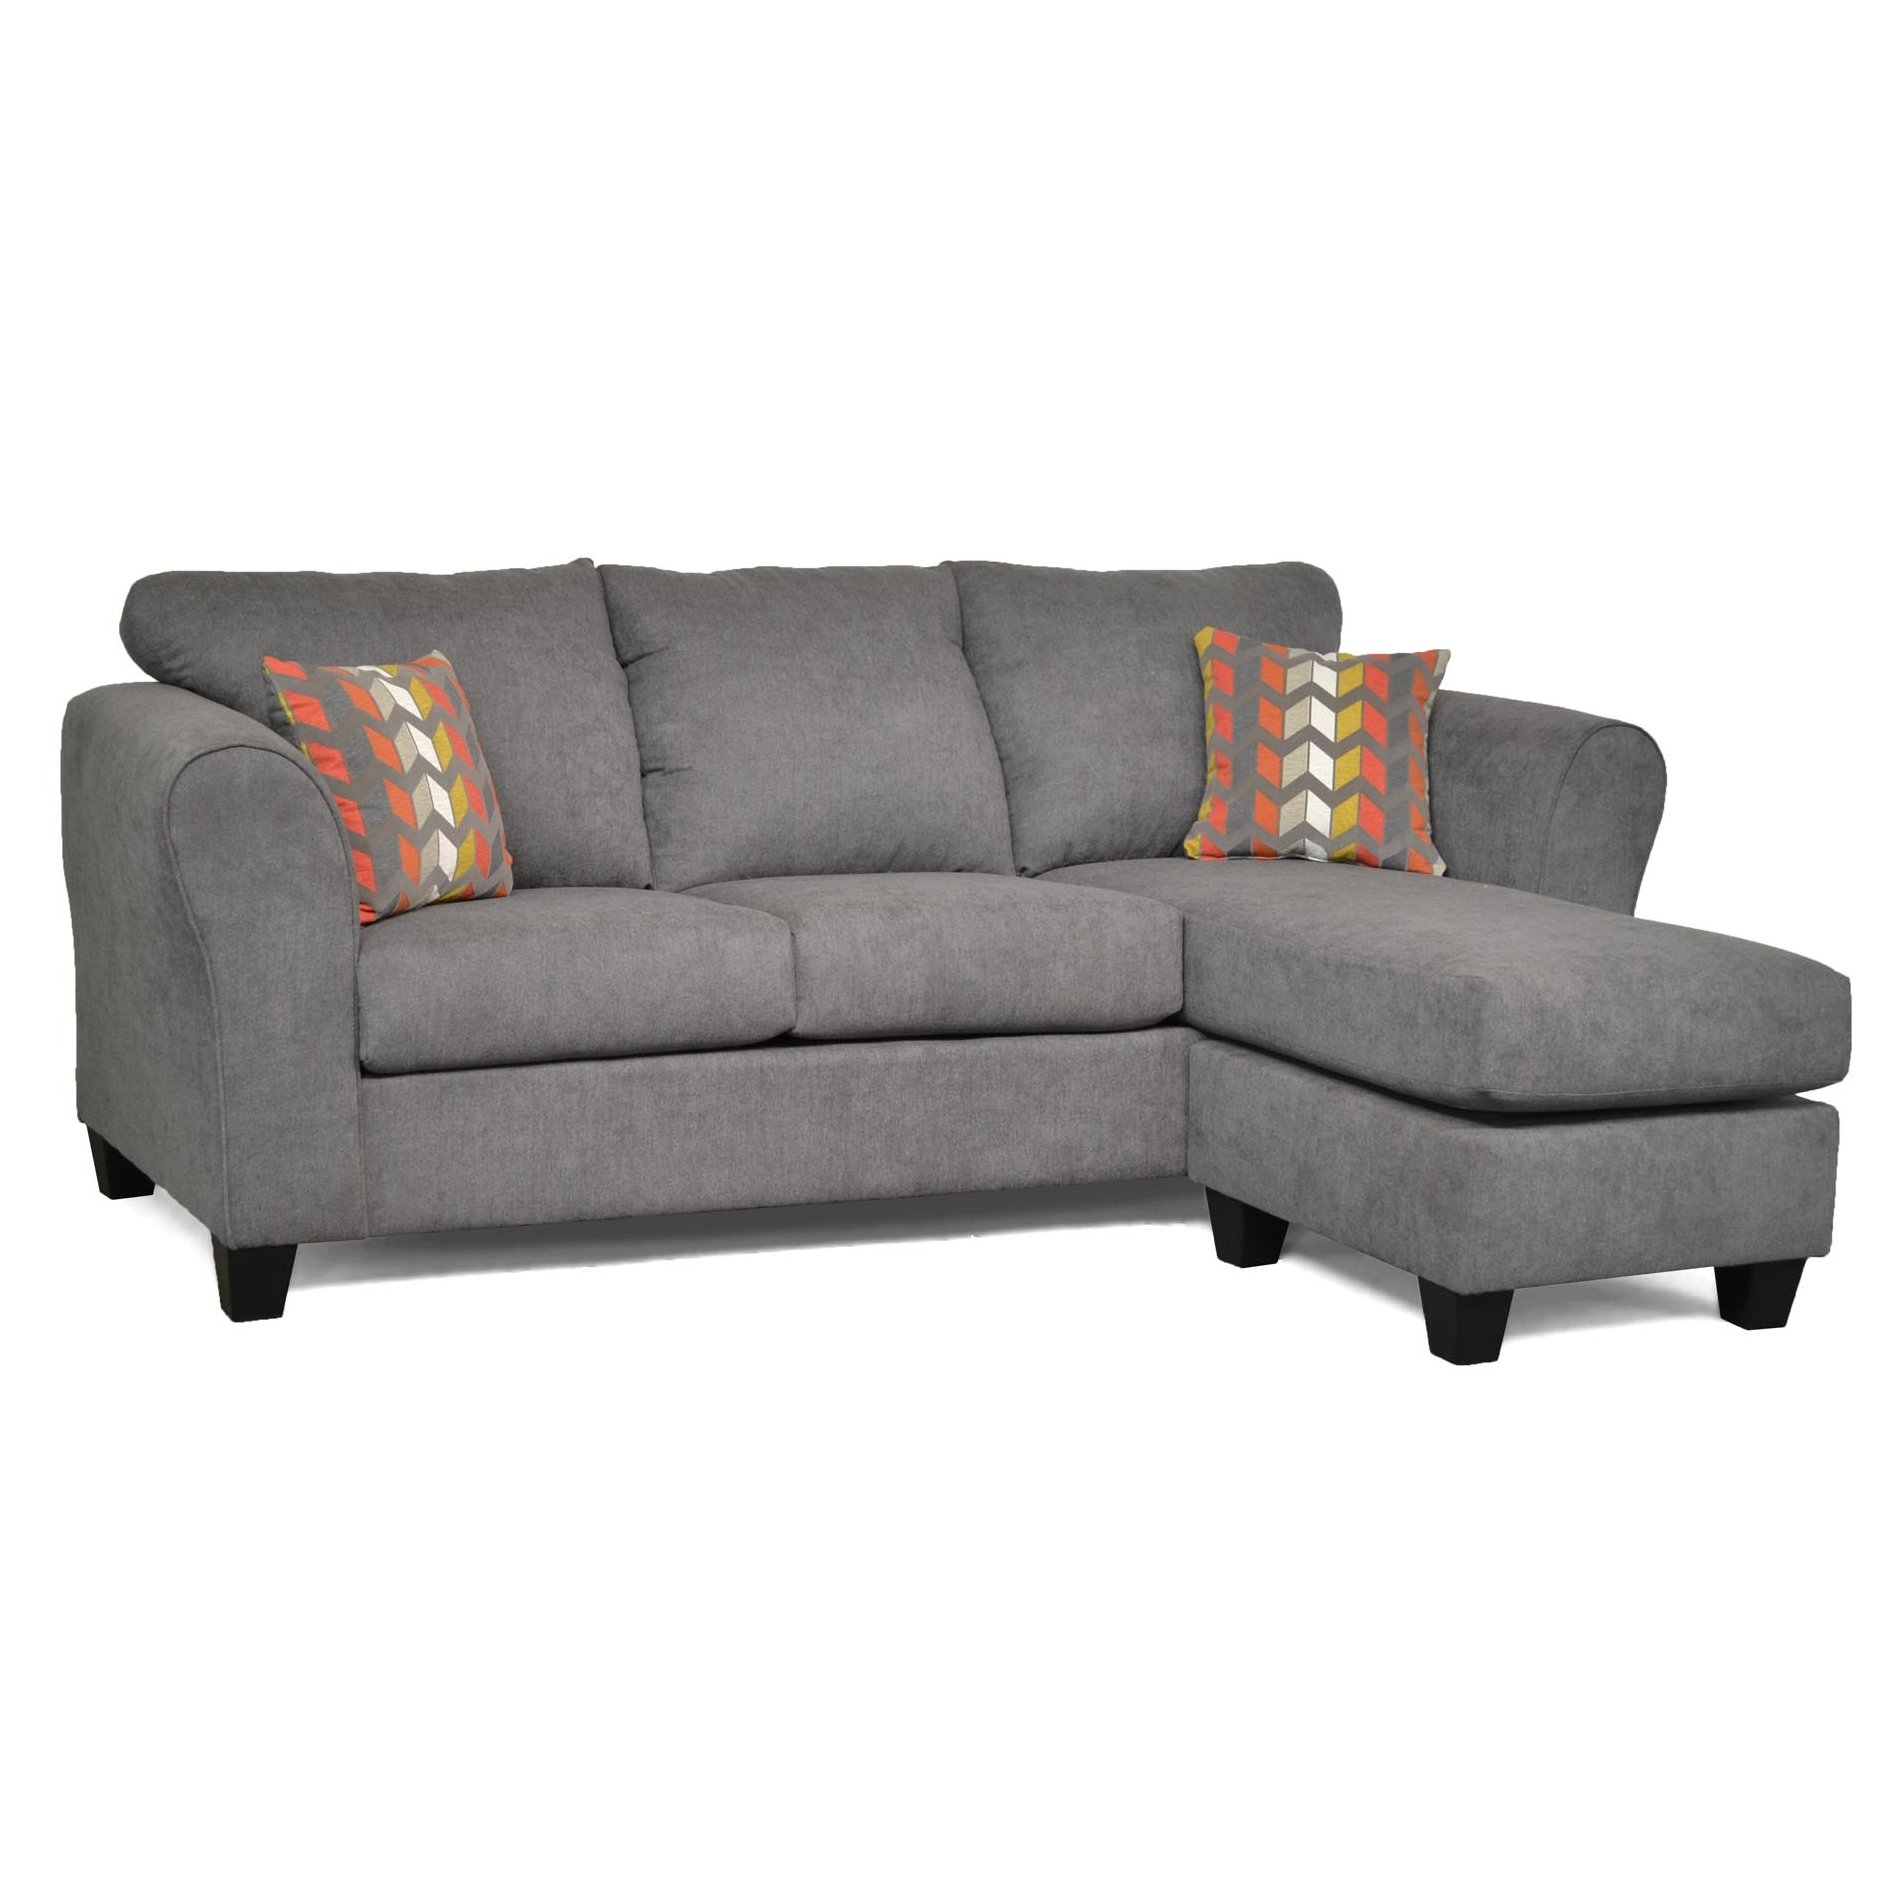 Sectional Sofas Youll Love Wayfair For Curved Sectional Sofa With Recliner (Image 10 of 15)